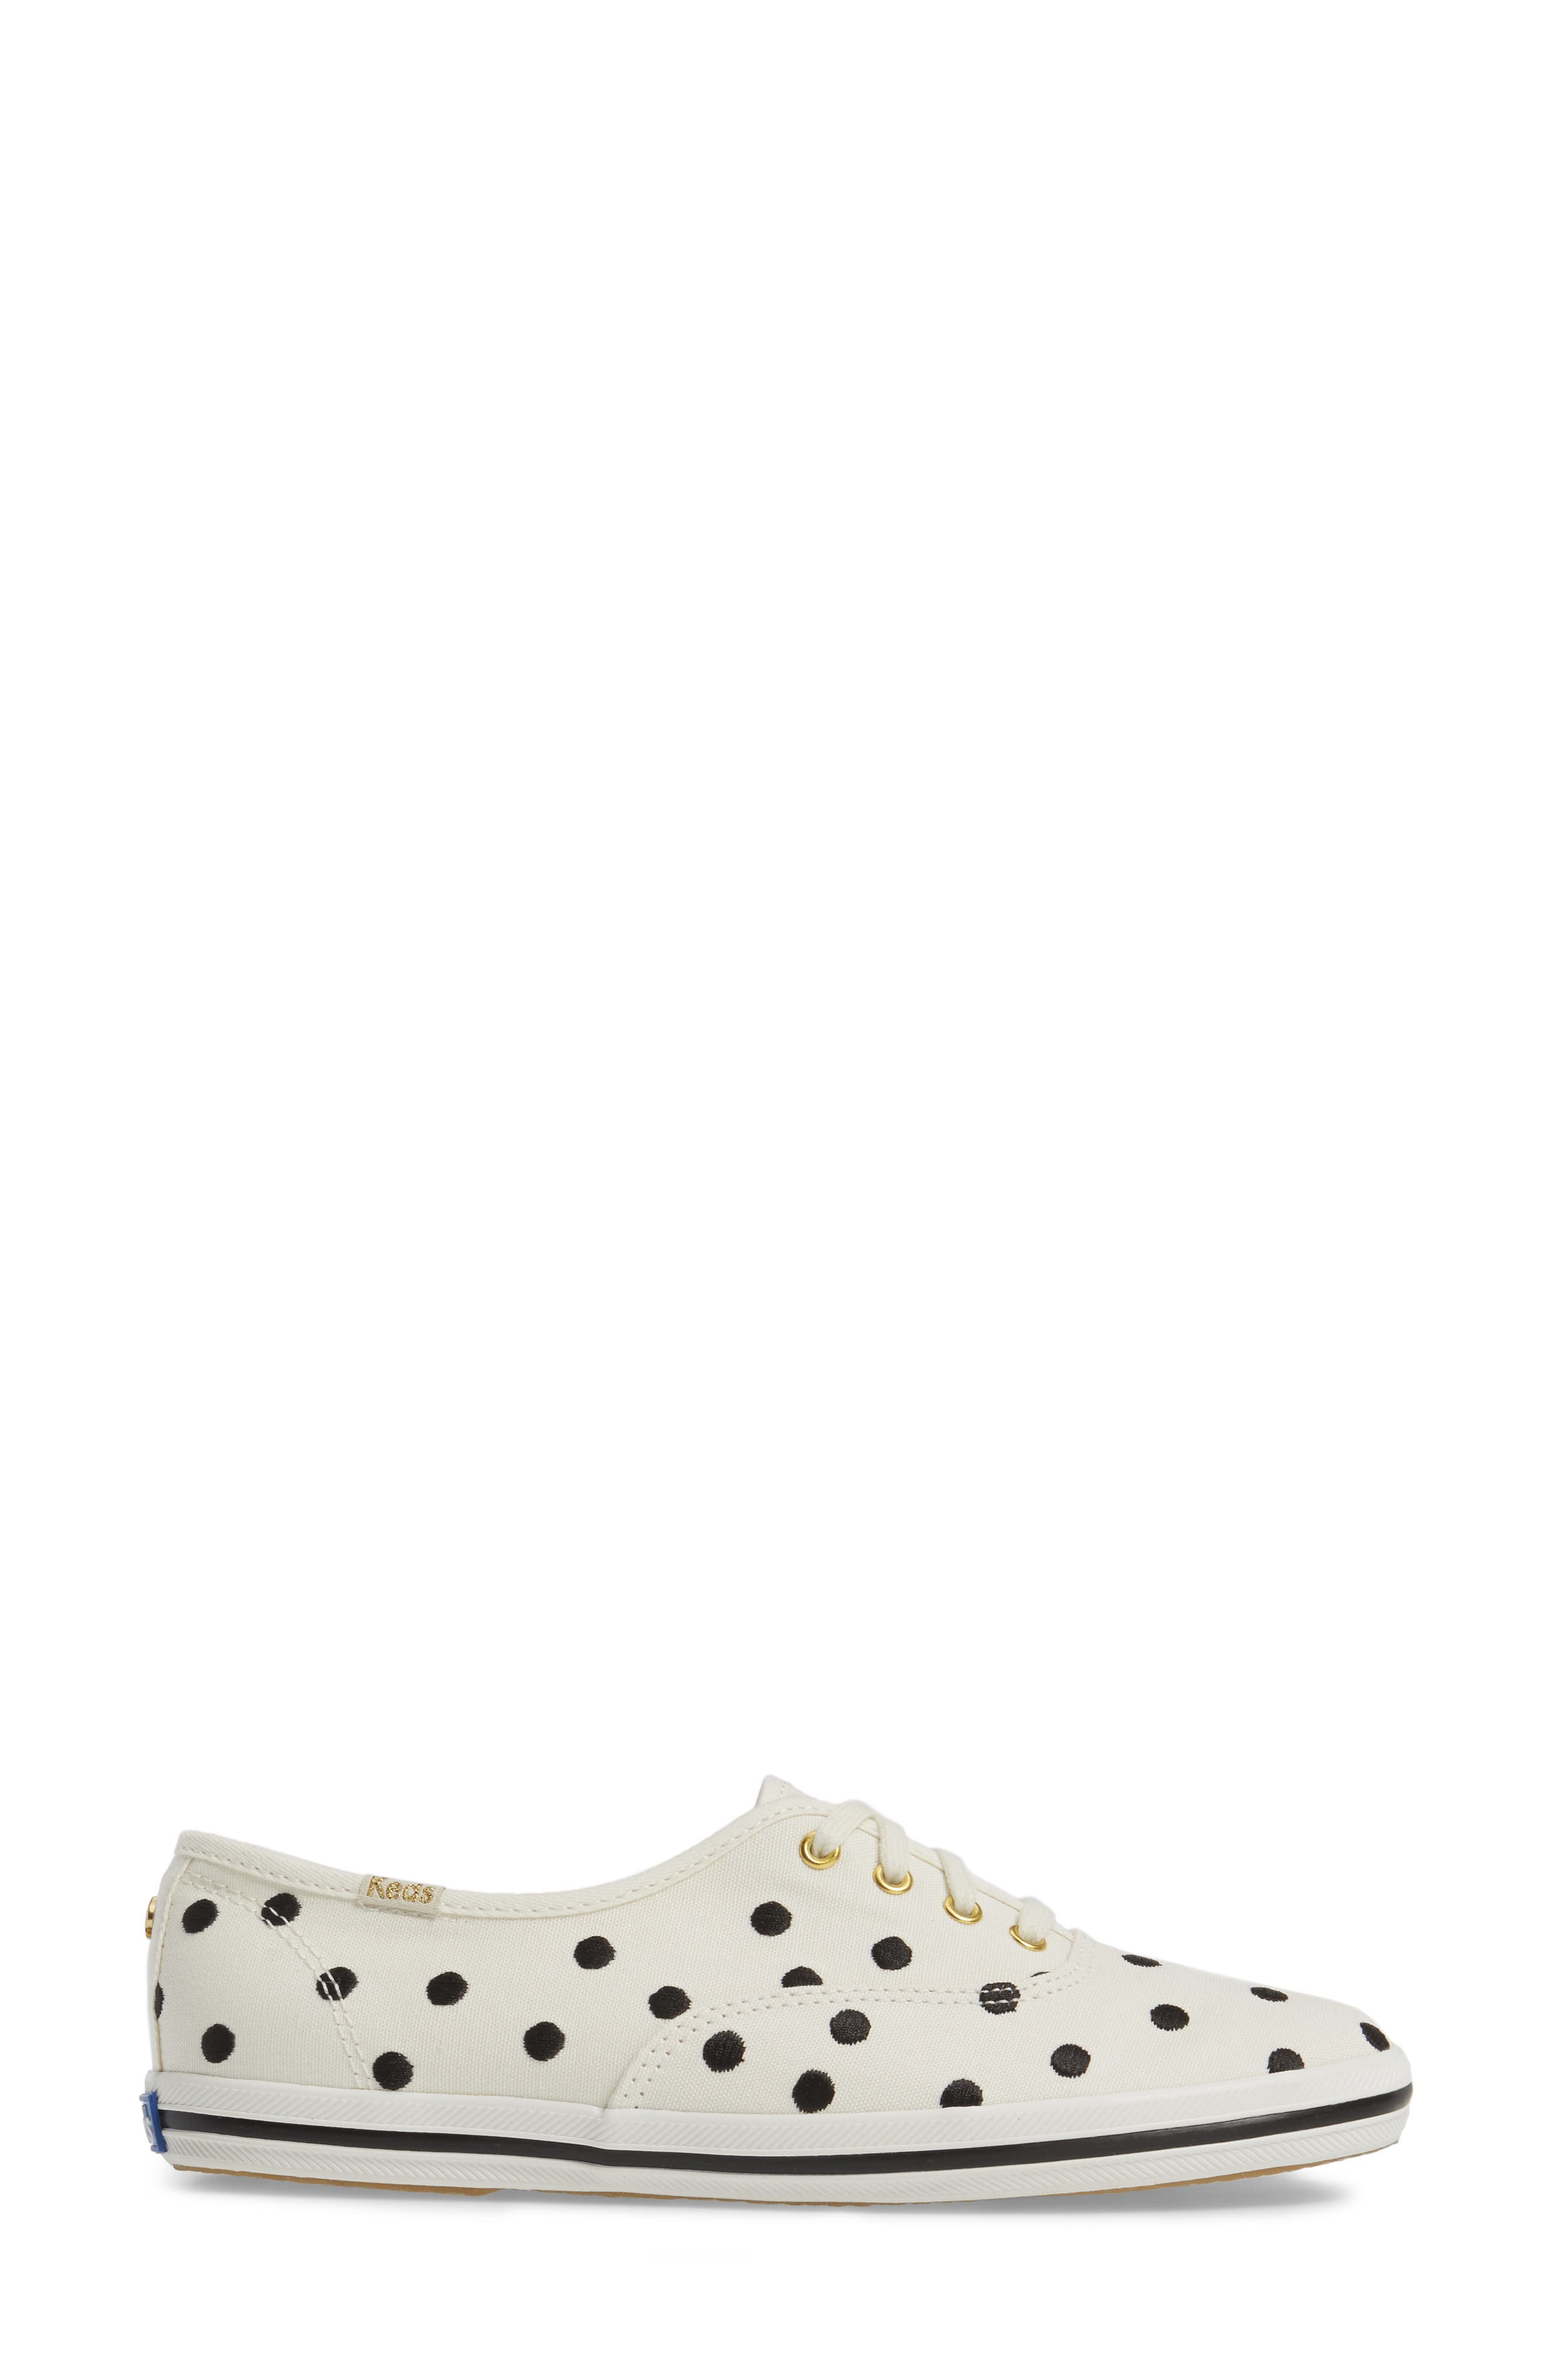 Keds<sup>®</sup> x kate spade new york champion sneaker,                             Alternate thumbnail 10, color,